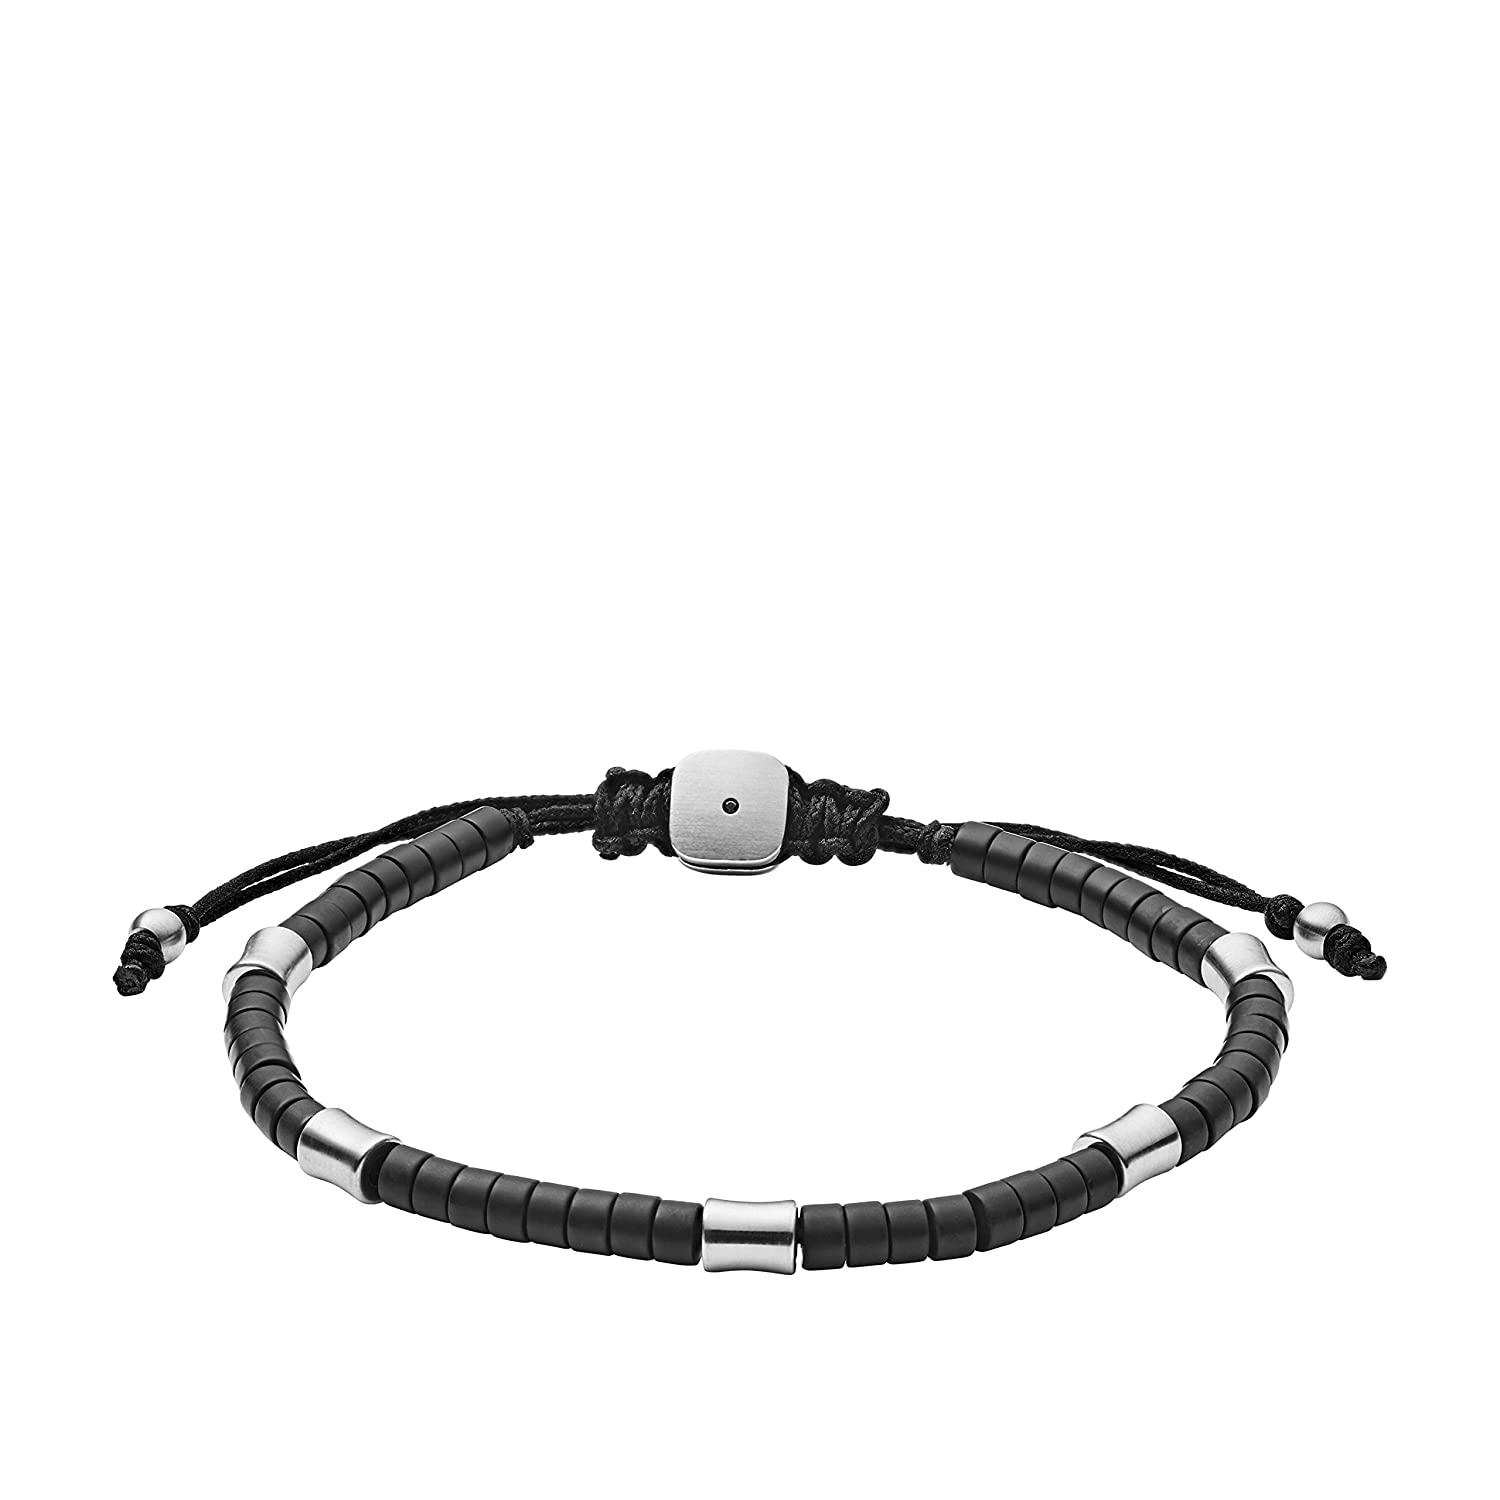 Fossil Womens Stainless Steel and Agate Bracelet with Adjustable Closure